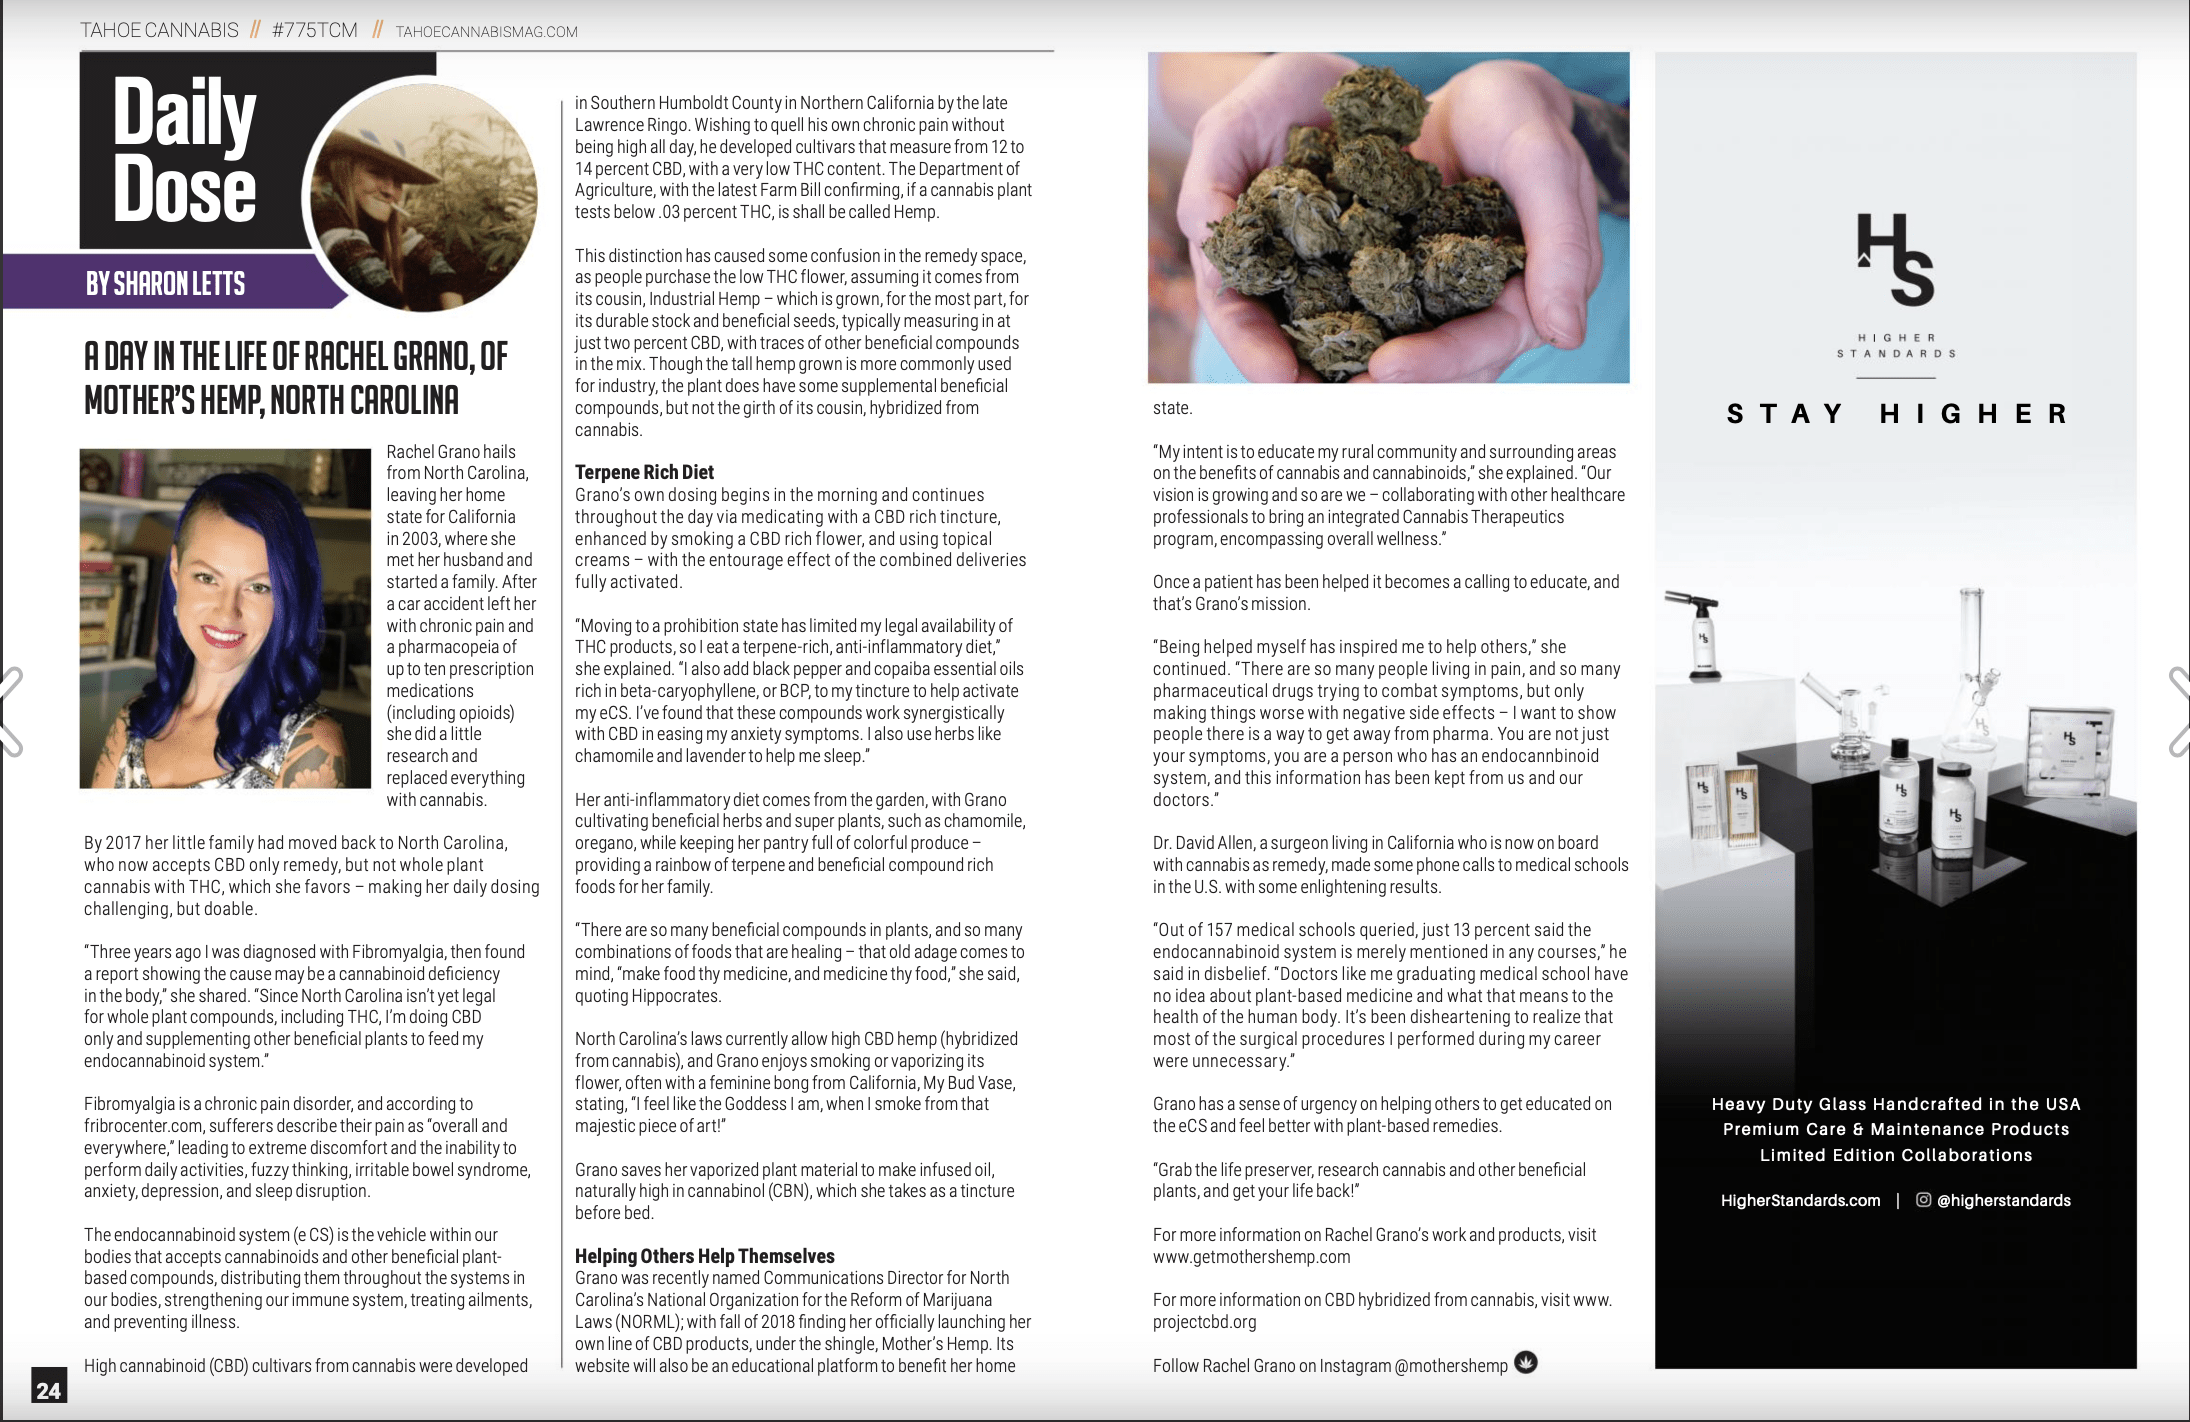 Mothers Hemp featured in Tahoe Cannabis Article